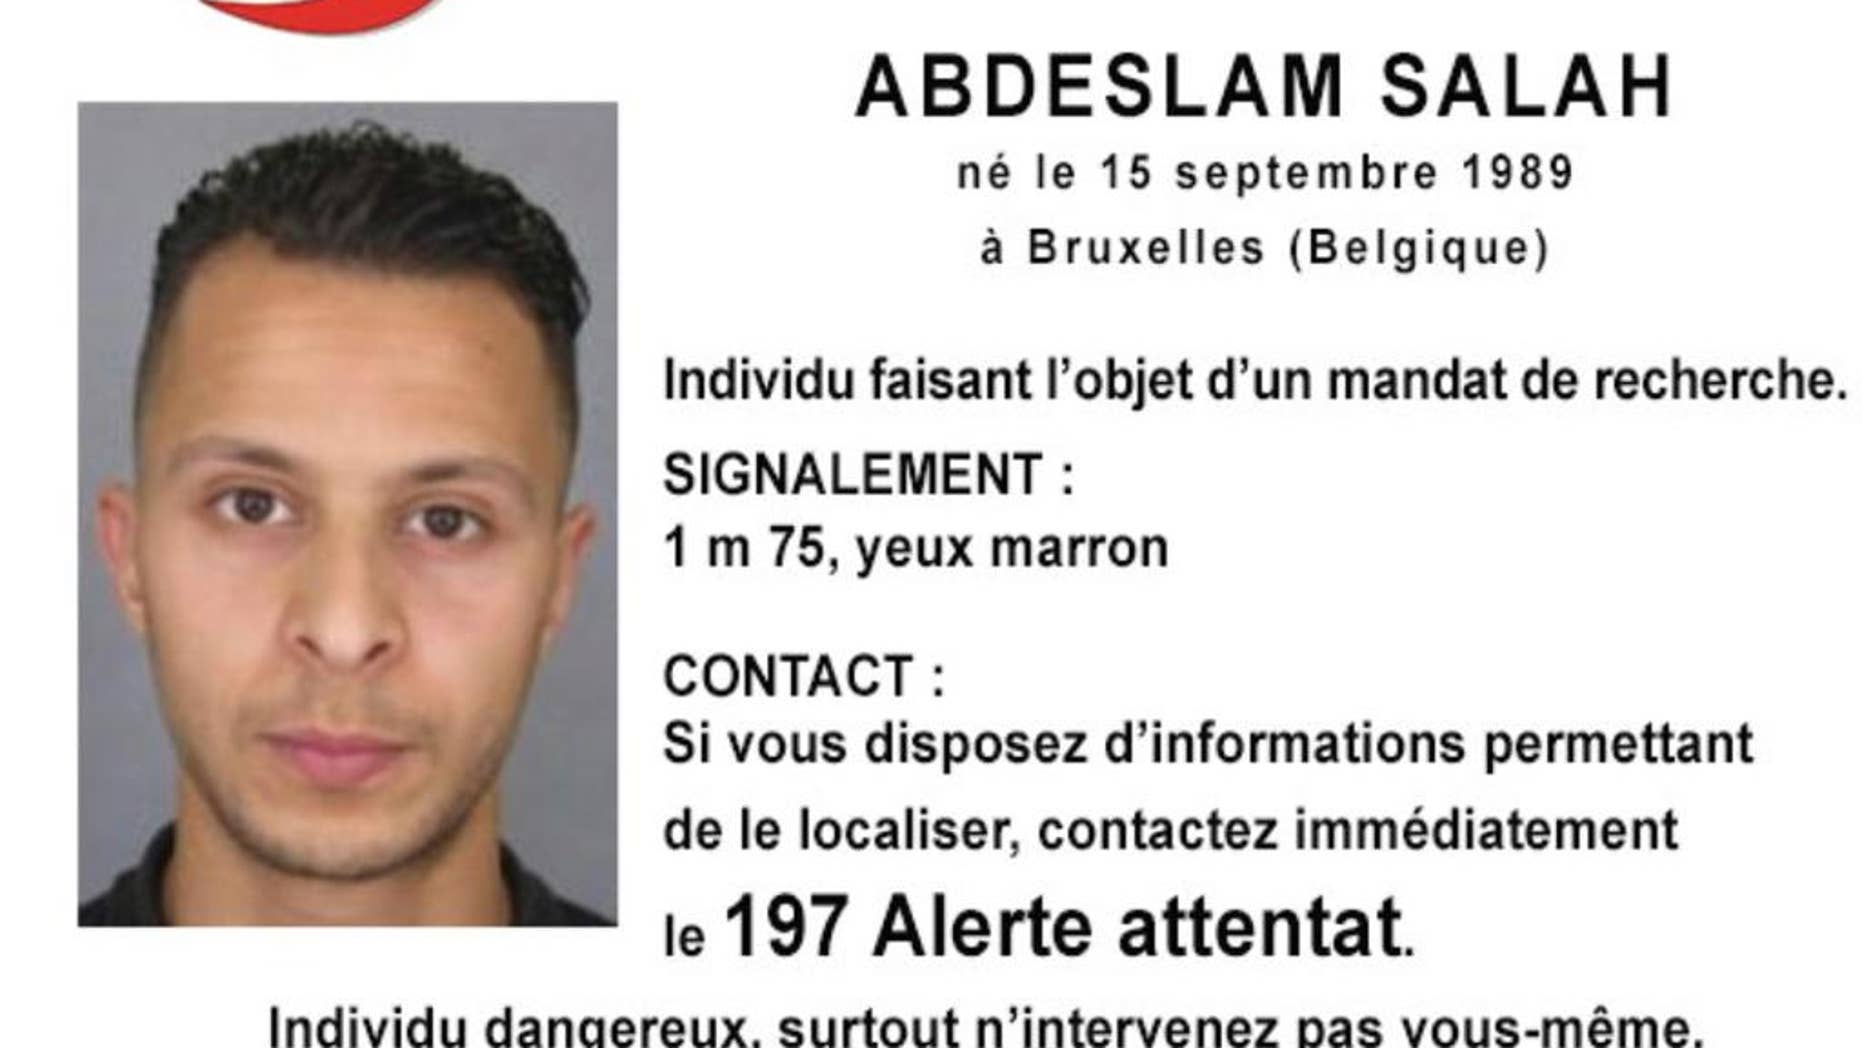 This undated file photo released Friday, Nov. 13, 2015, by French Police shows 26-year old Salah Abdeslam, who is wanted by police in connection with recent terror attacks in Paris, as police investigations continue. Belgian prosecutors confirmed Wednesday April 27, 2016 that Paris attacks suspect Salah Abdeslam was handed over to French authorities. (Police Nationale via AP)